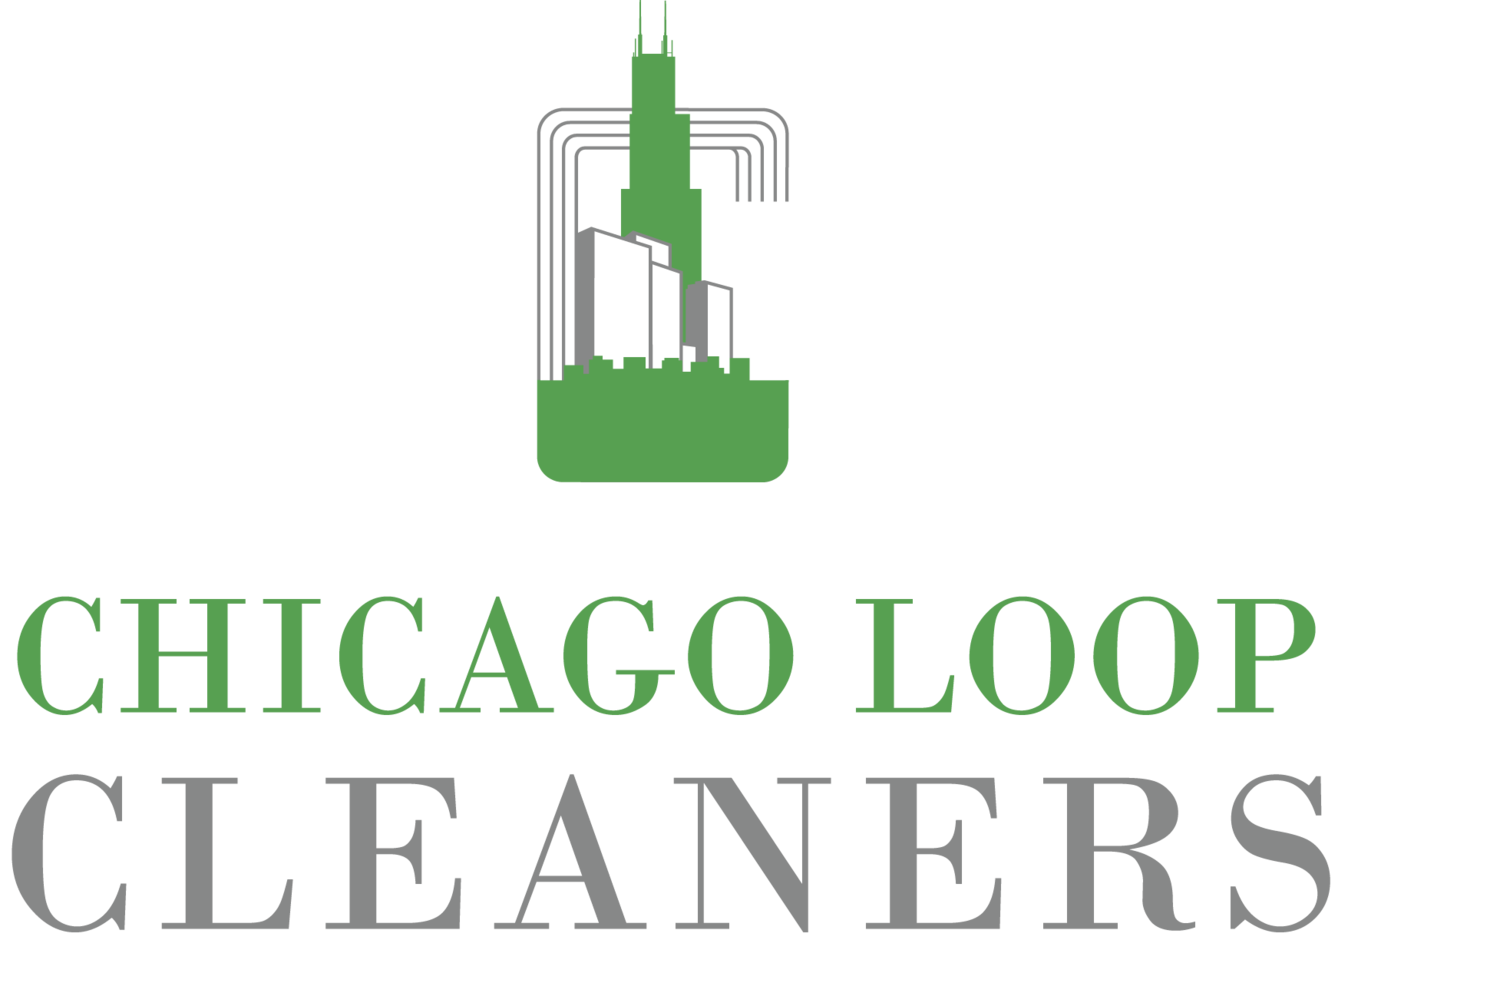 Chicago Loop Cleaners